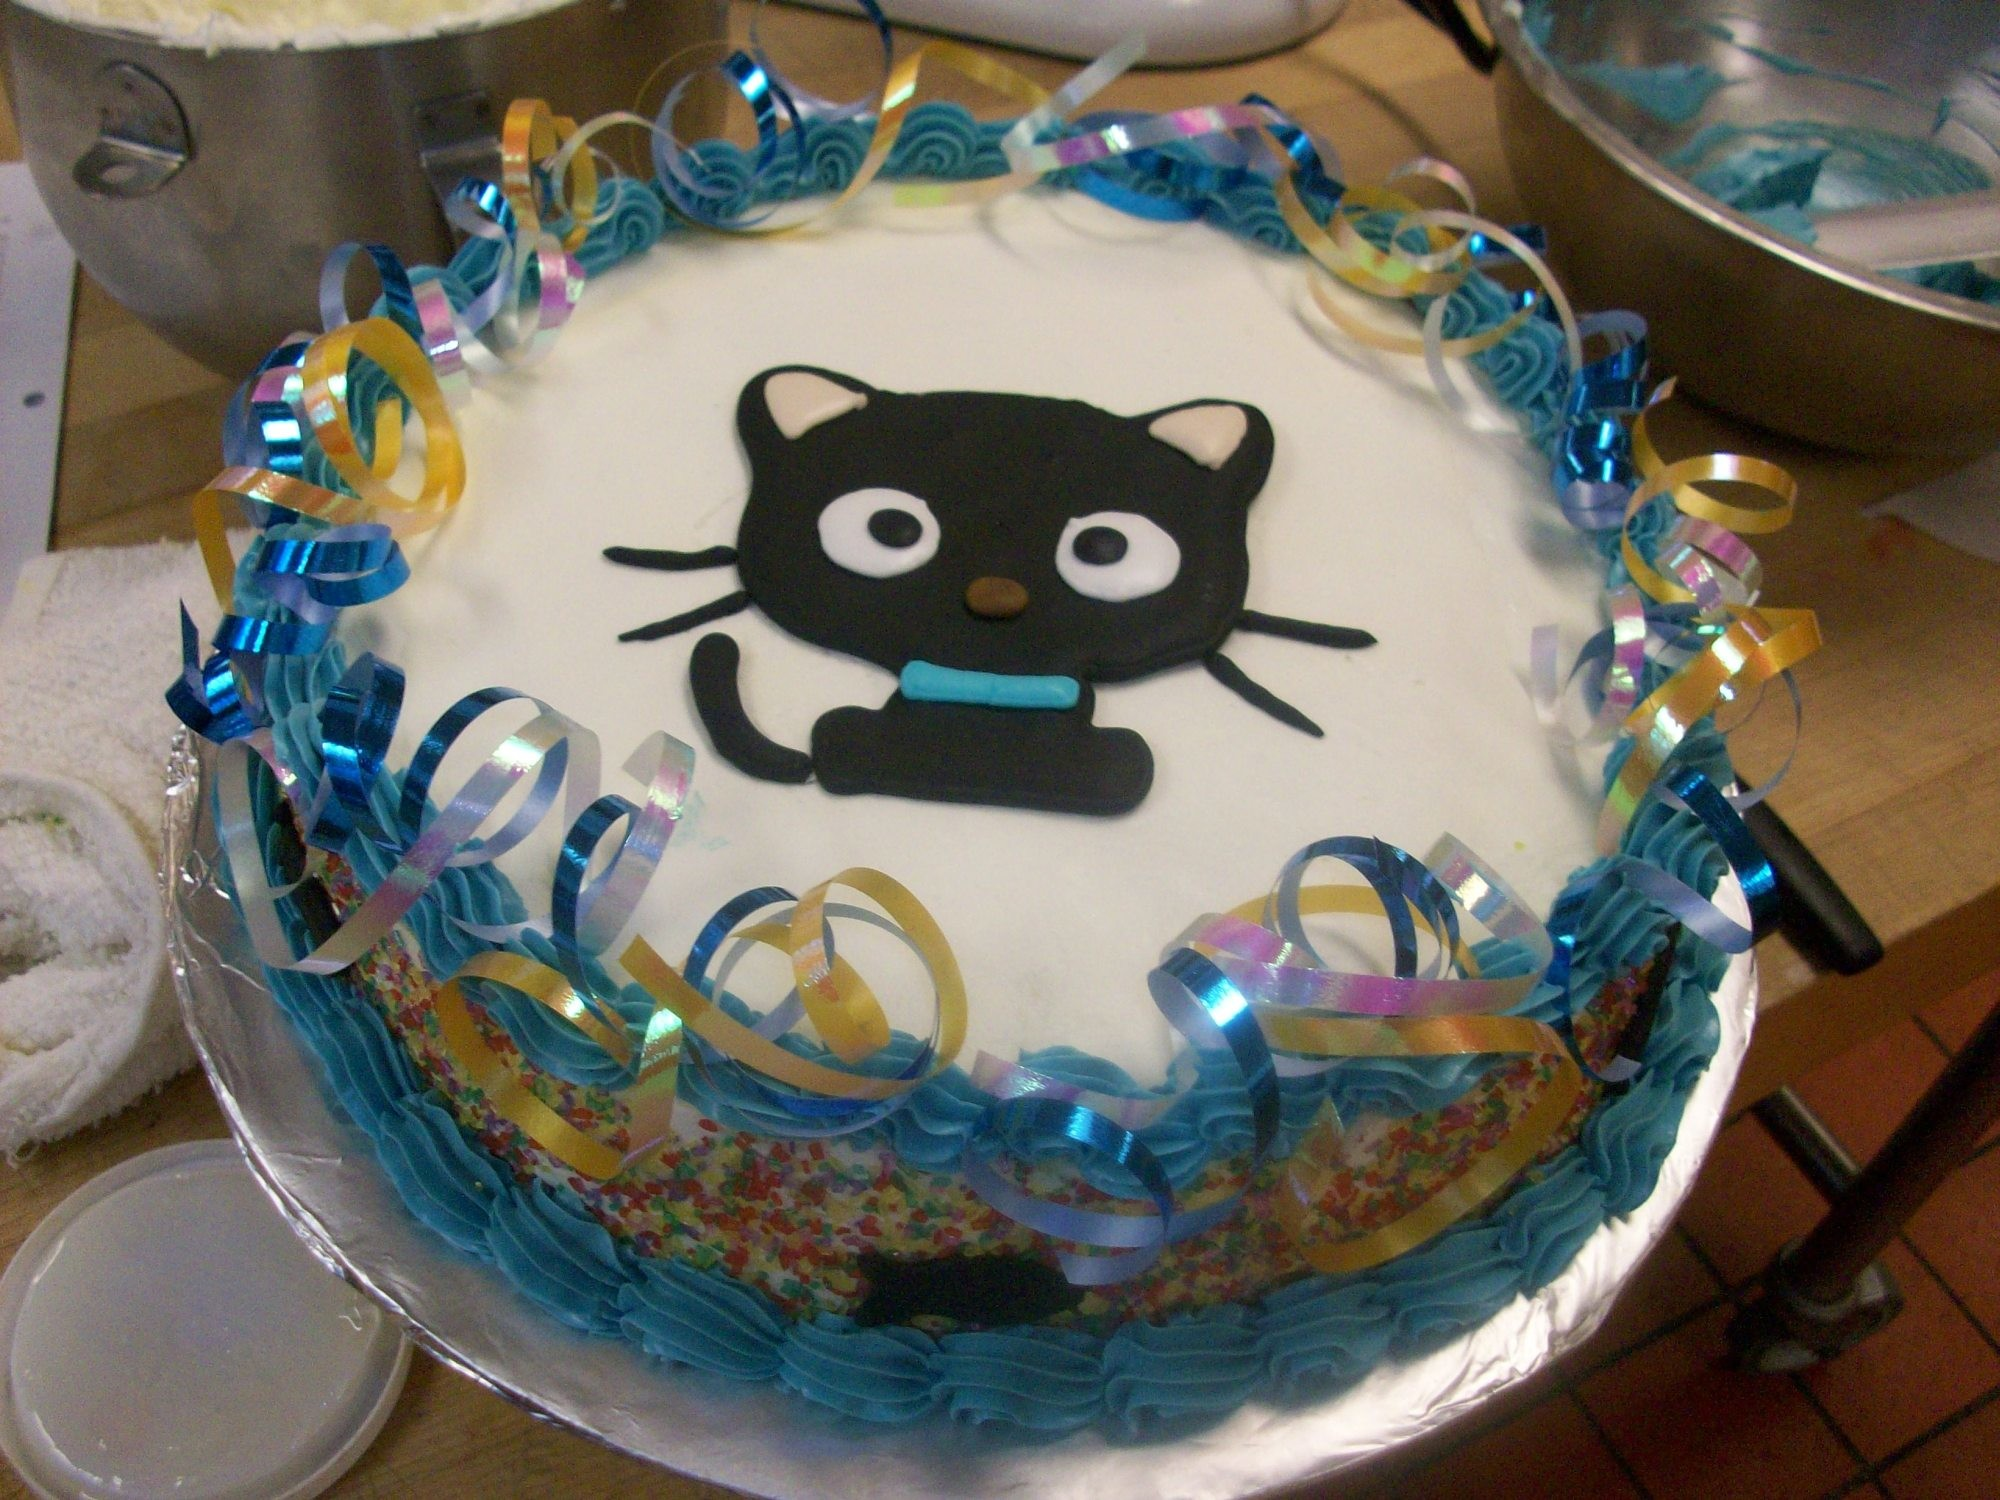 Res: 2000x1500, chococat in cake wallpapers